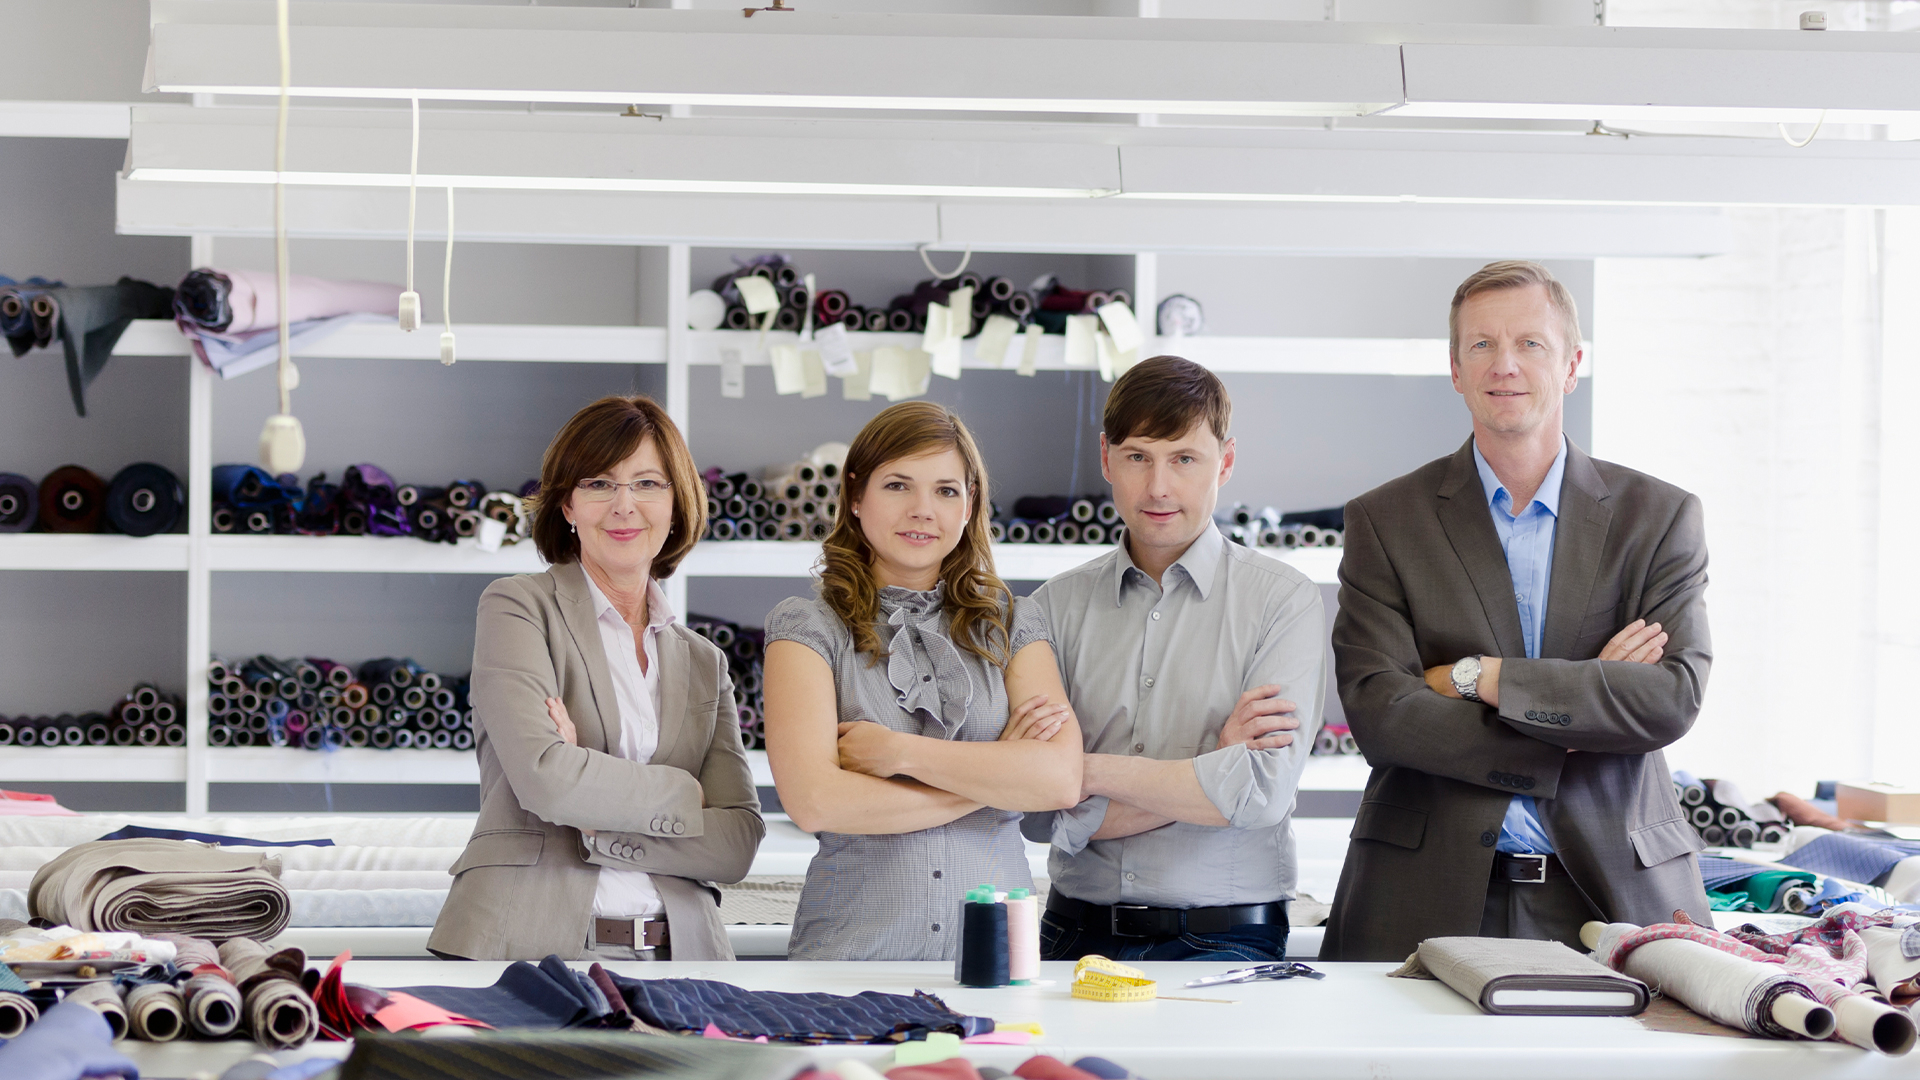 Four individuals stand in a textile workshop with their arms crossed.